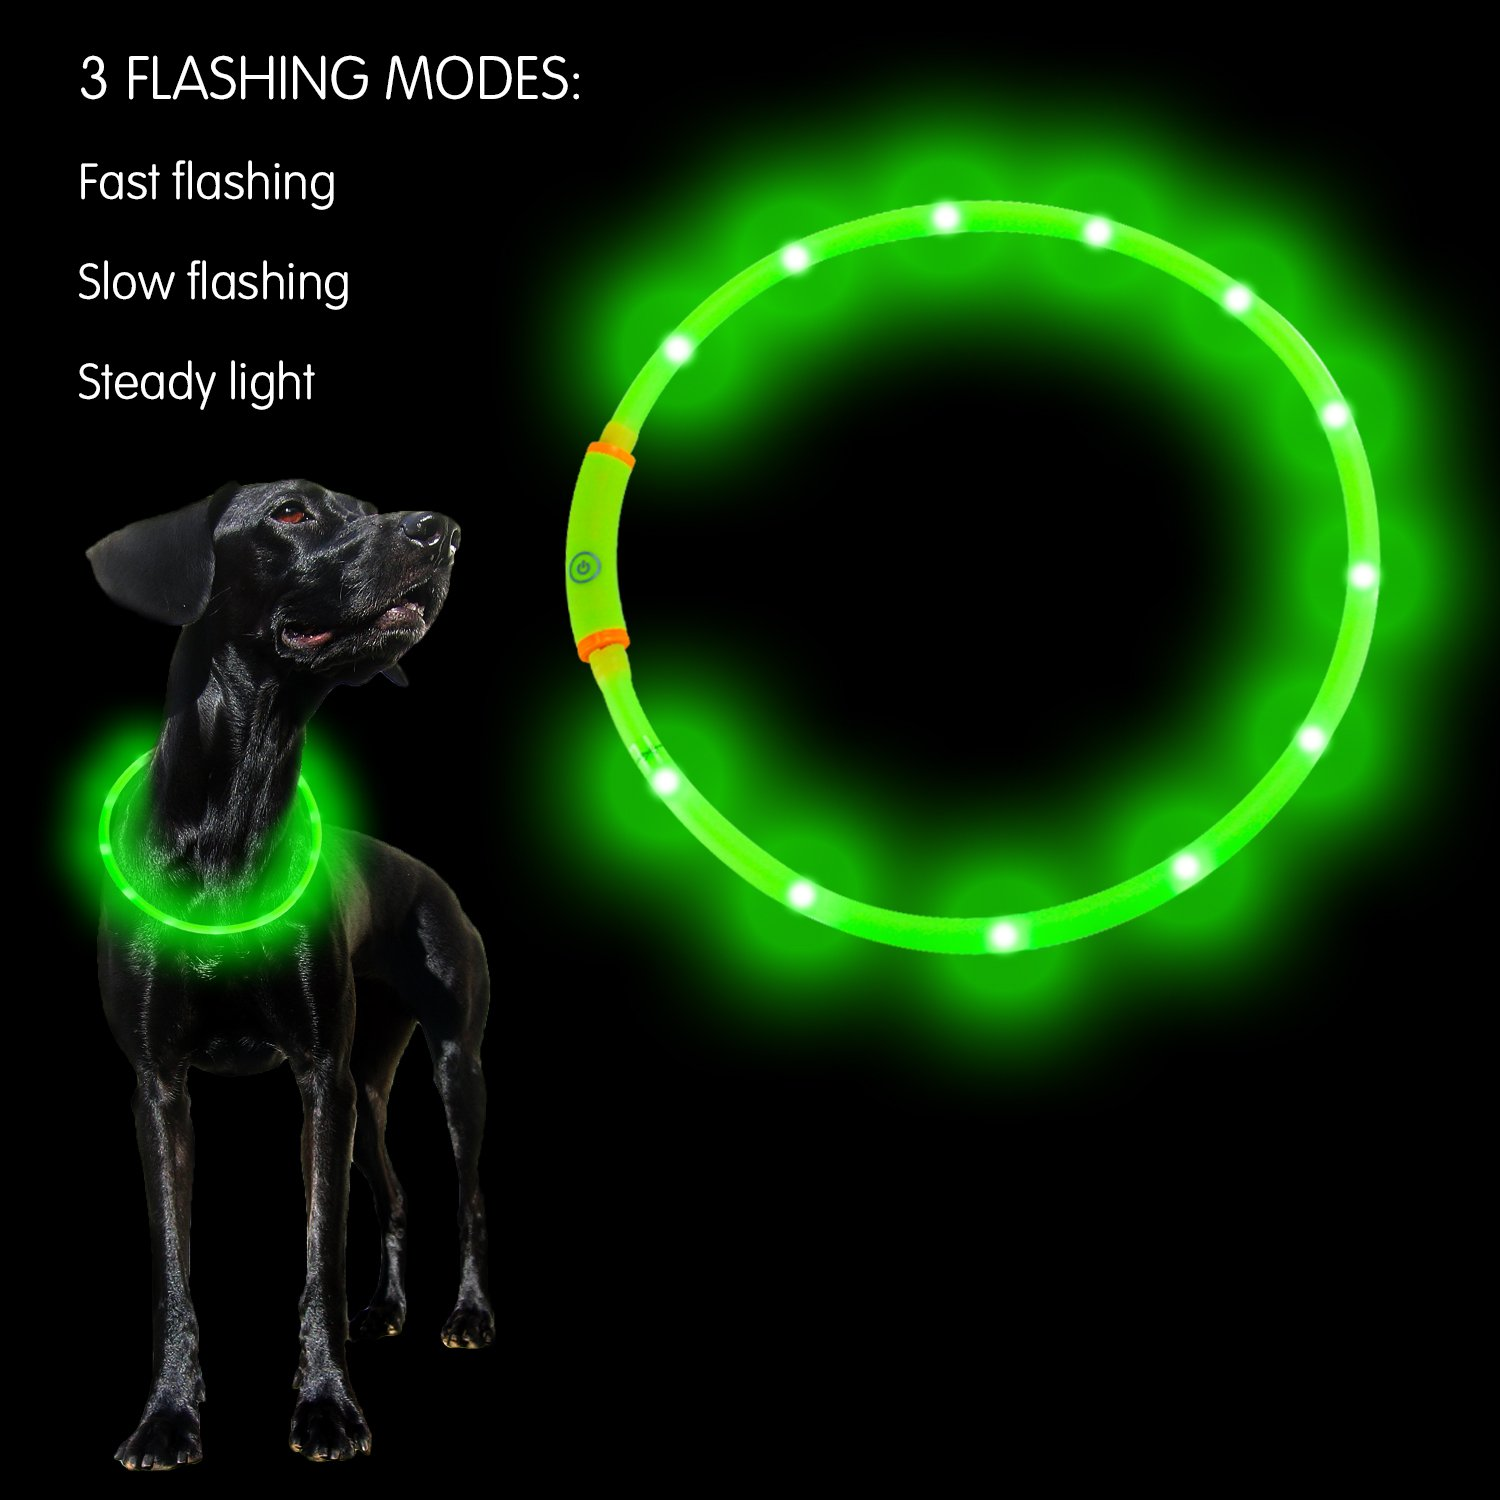 PetIsay 100% Waterproof LED Dog Collar - USB Rechargeable - Glow in the dark Makes Your Dog Visible, Safe & Seen - Light up Dog Collar for Small, Medium, Large Dogs Large Dogs(Neon Green) MT Co. Ltd MTGJDCGAM